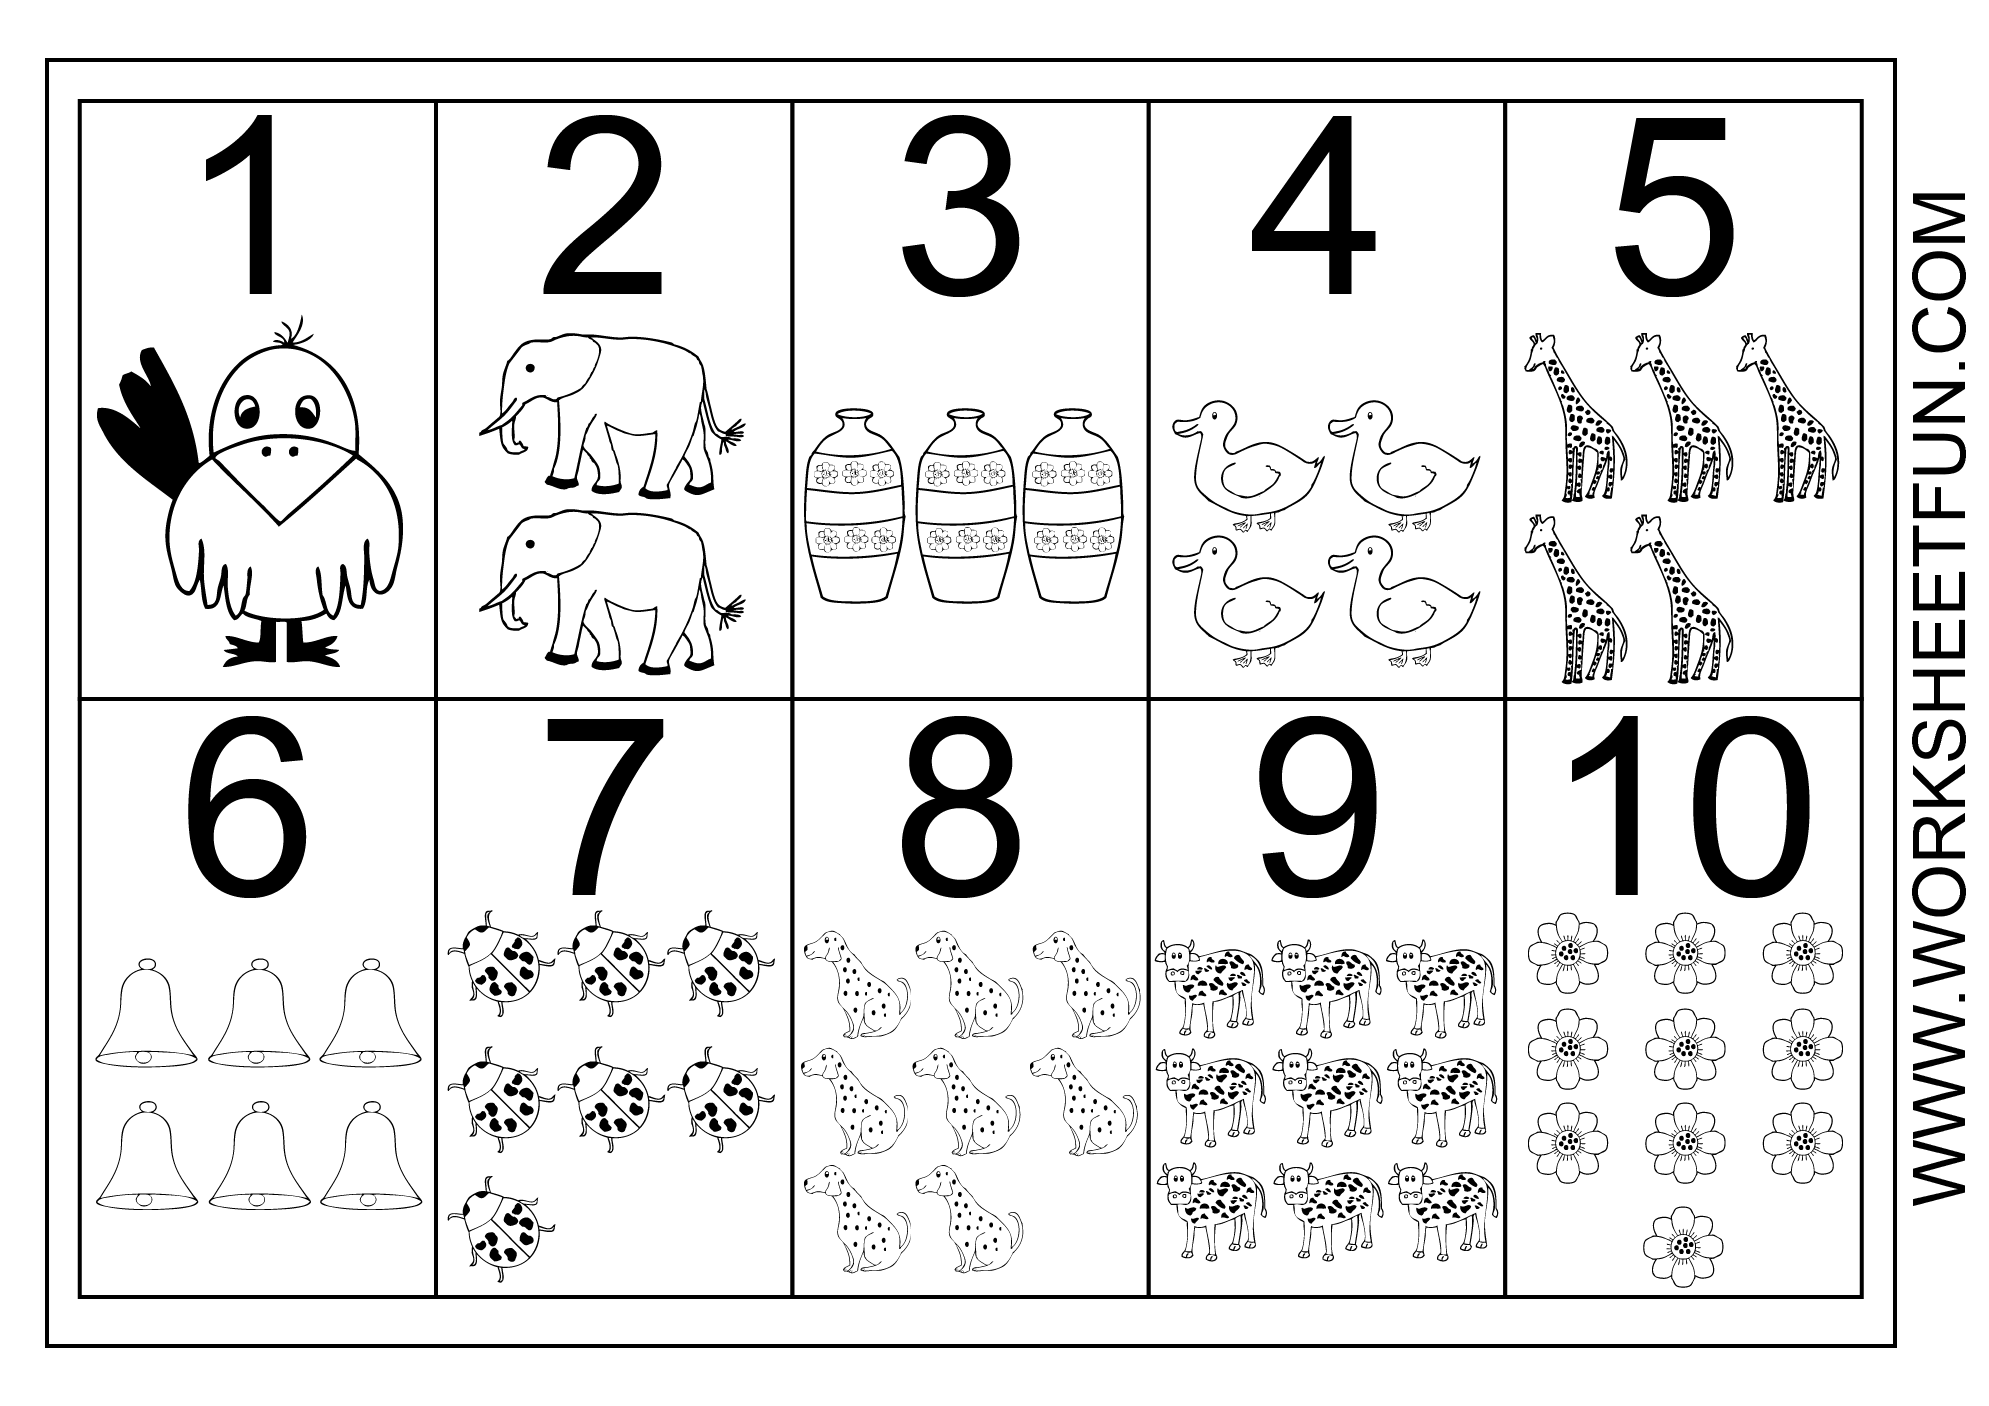 Worksheet 13241937 Tracing Numbers Worksheets for Kindergarten – Number Worksheet for Kindergarten